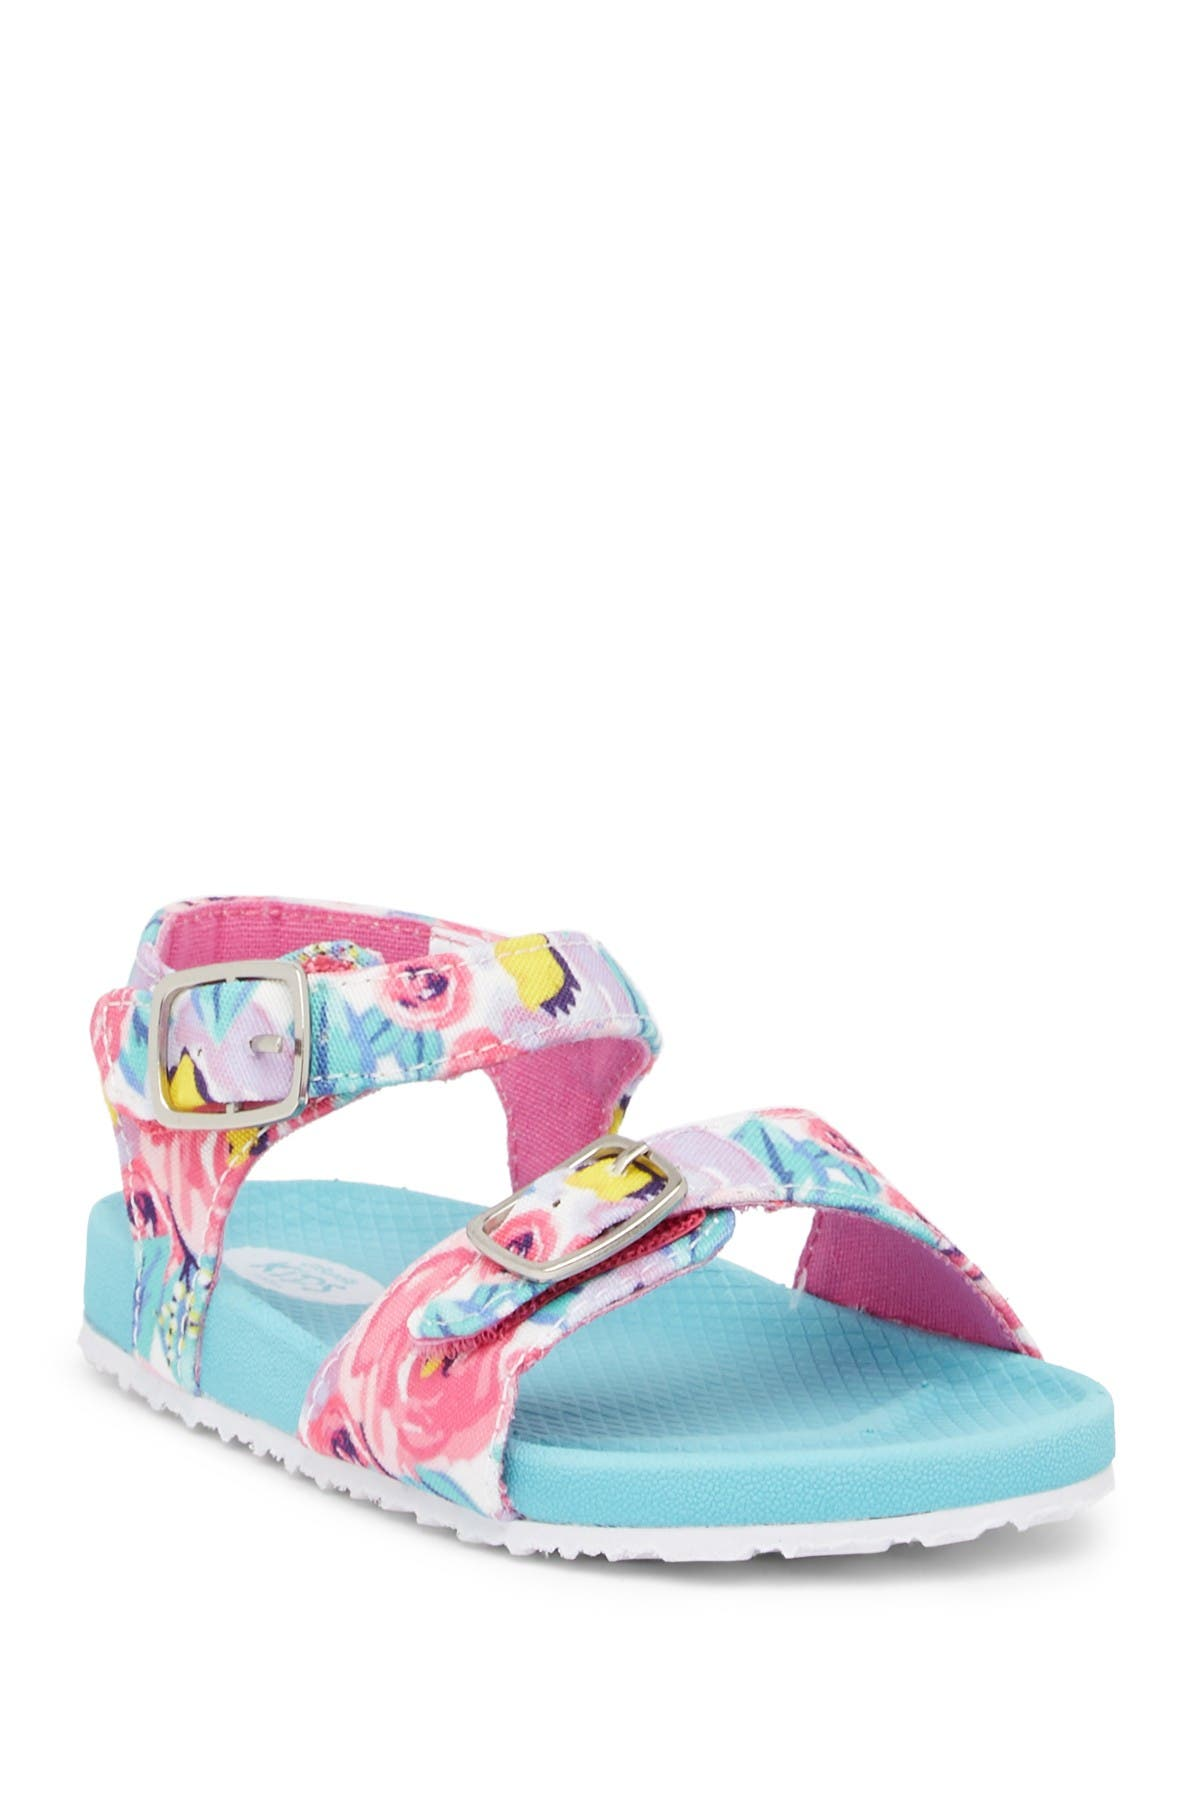 Image of Dr. Scholl's Isla Floral Printed Sandal